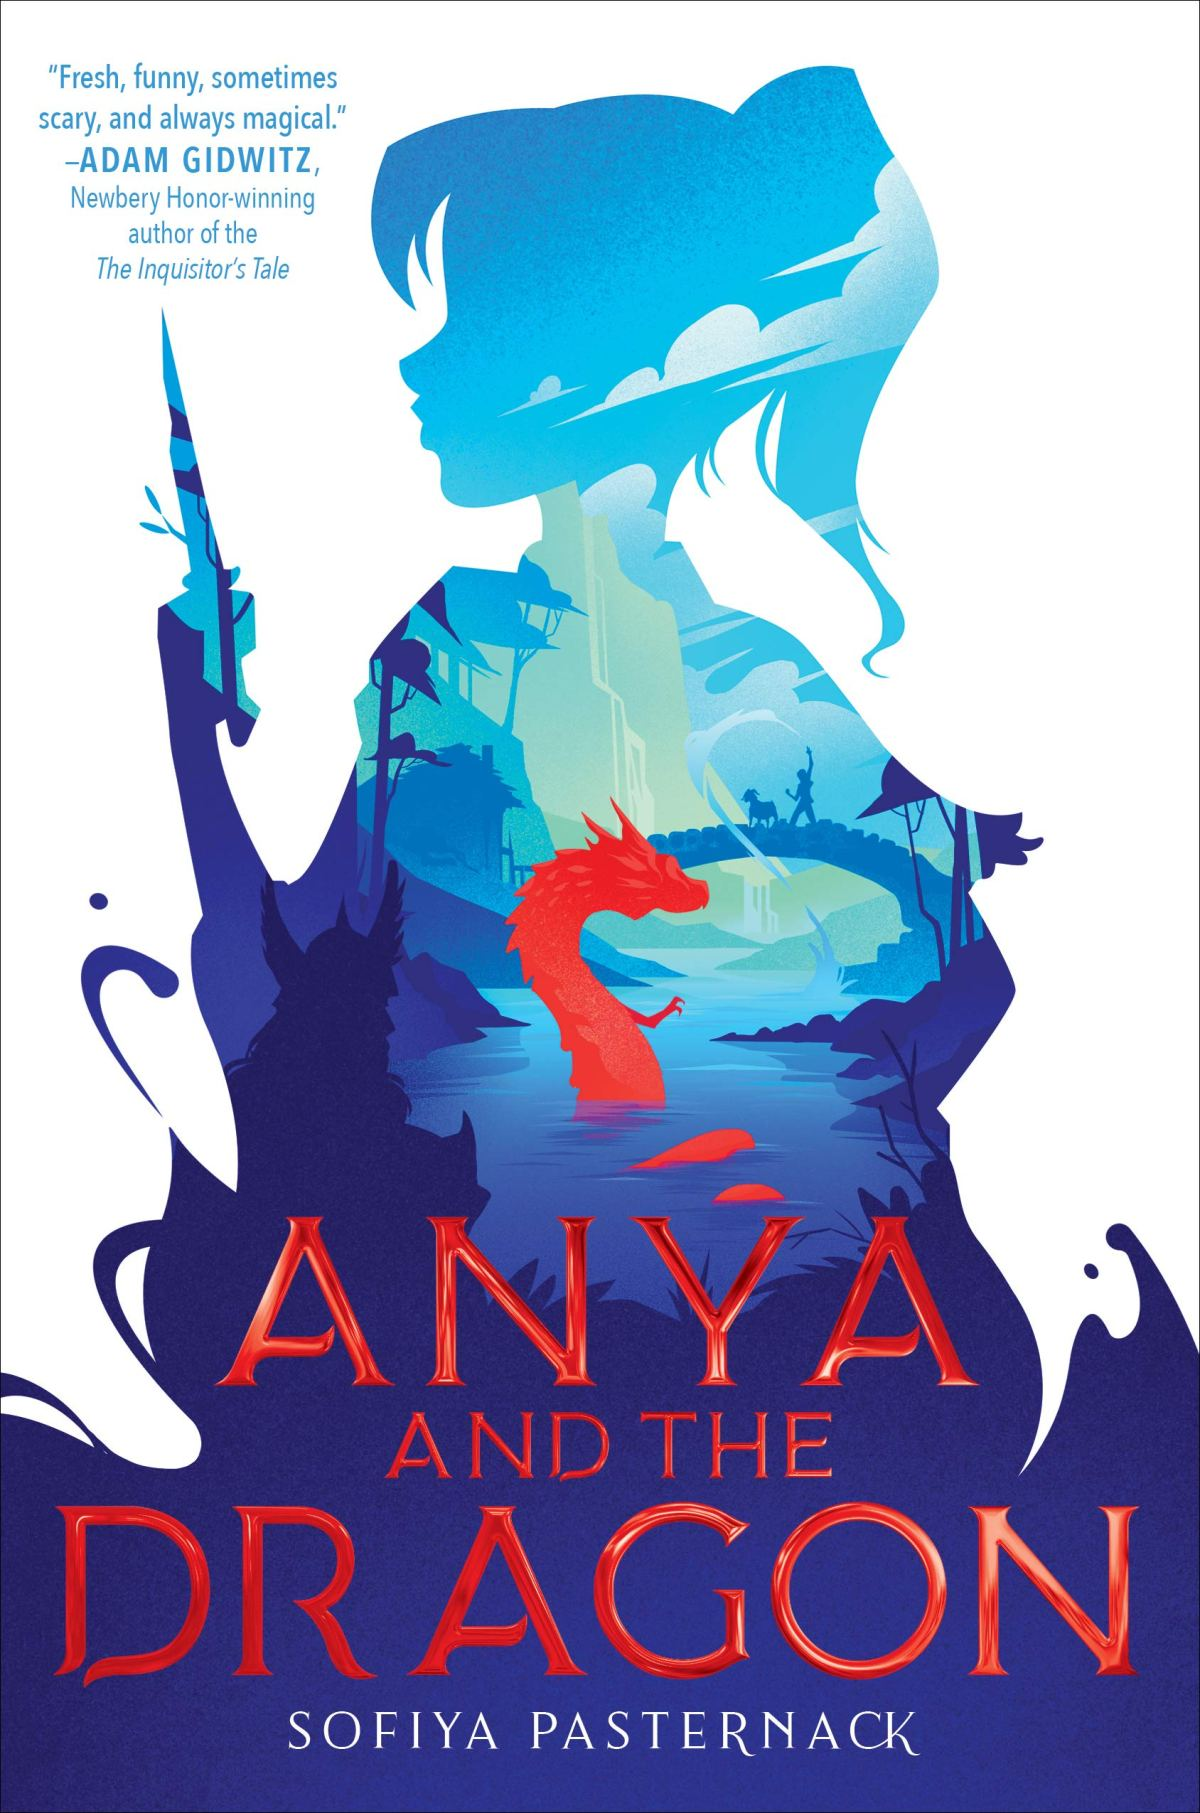 Book cover image for Anya and the Dragon by Sofiya Pasternack